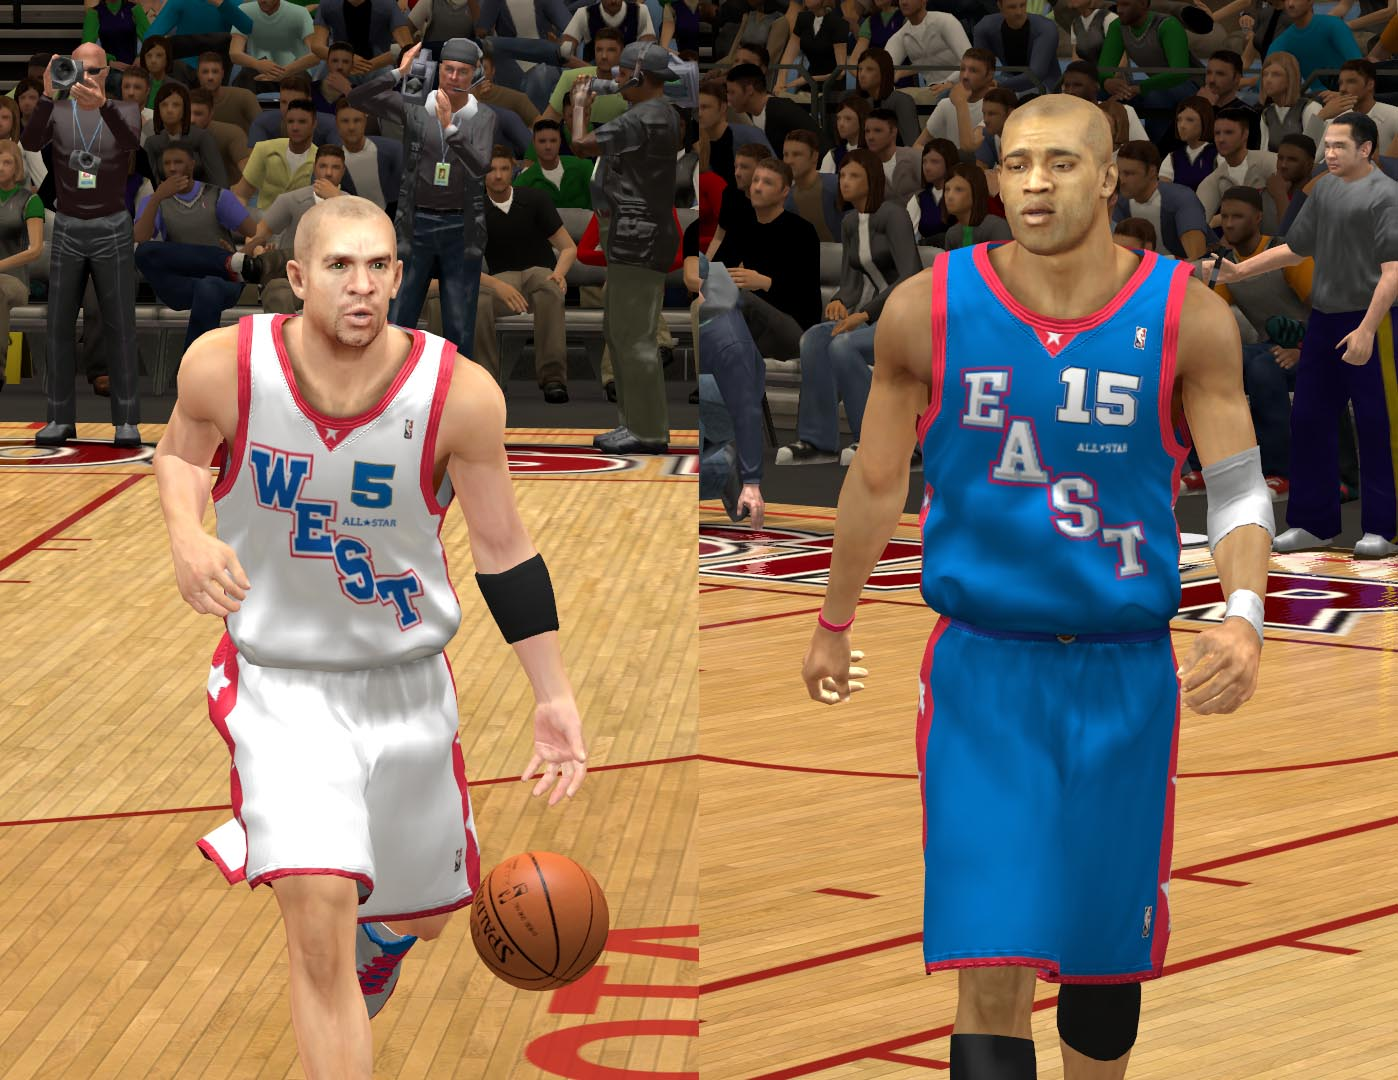 2004 All-Star Jerseys 2K13